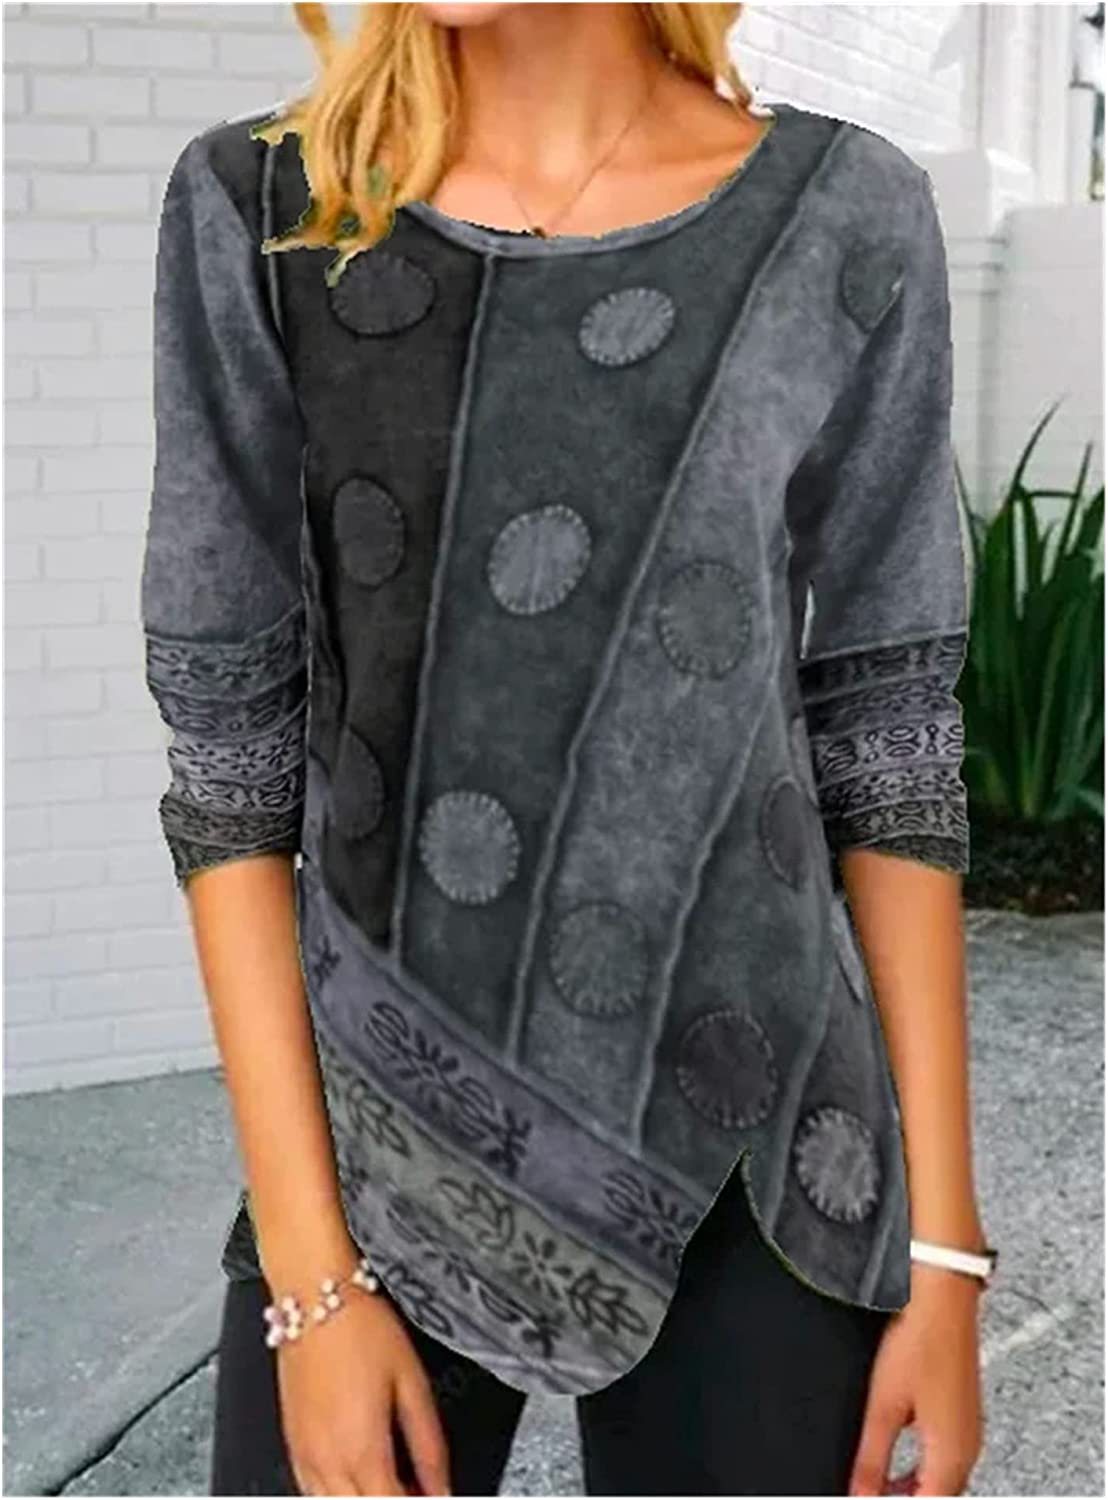 Women's Long-Sleeved T-Shirt Clothing Autumn Spring and Complete Free Shipping Ranking TOP15